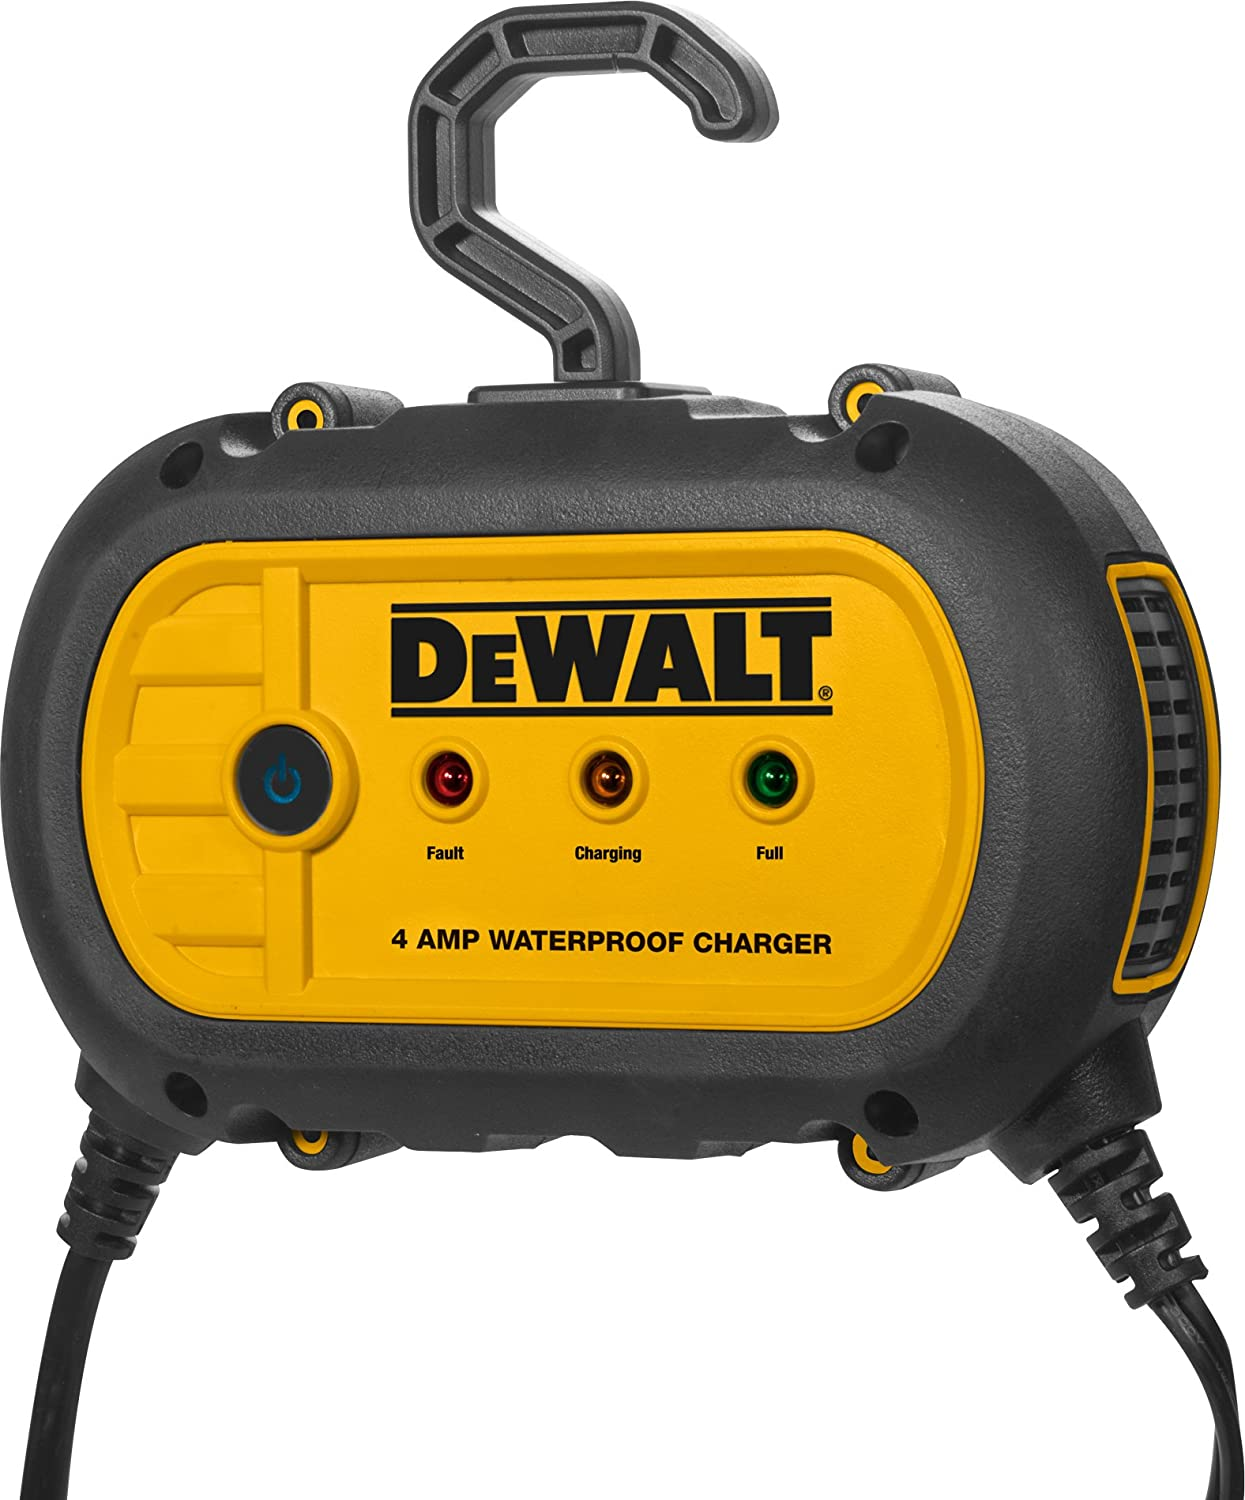 DEWALT DXAEWPC4 Fully Limited time trial price Automatic 4 Amp Waterproof 12V Cha Very popular Battery